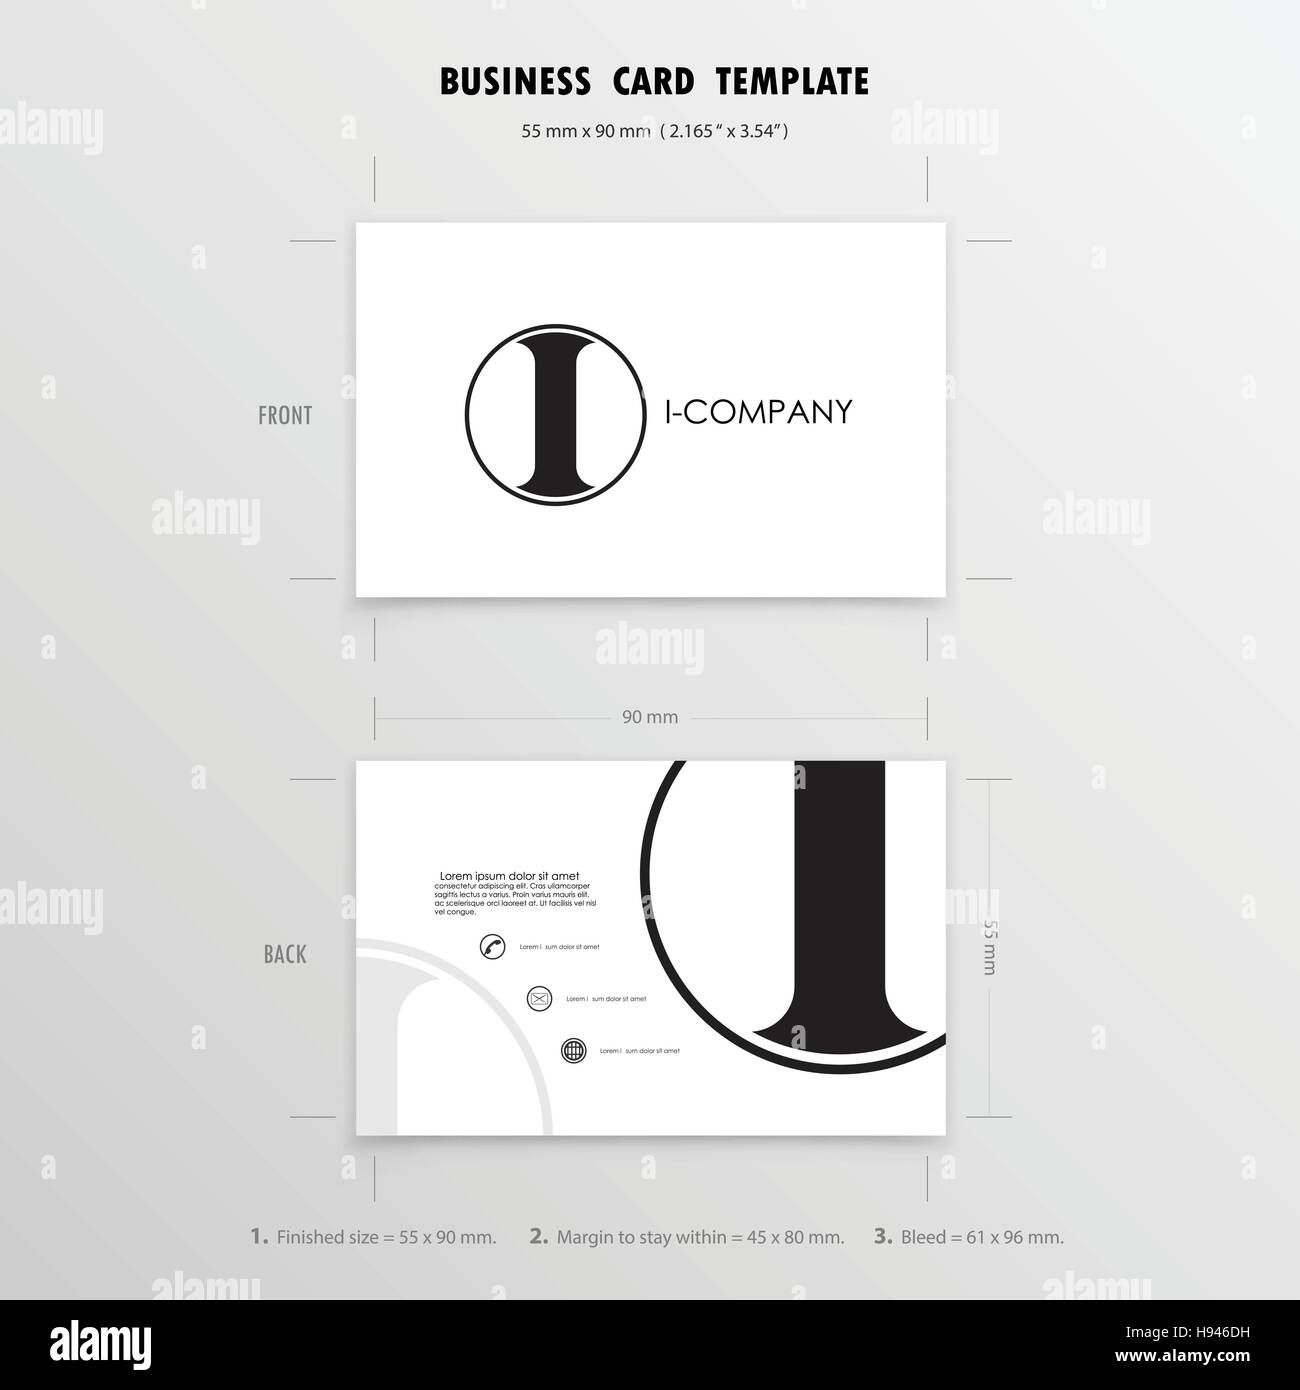 Business Cards Design Template. Name Cards Symbol. Size 55 mm x 90 ...